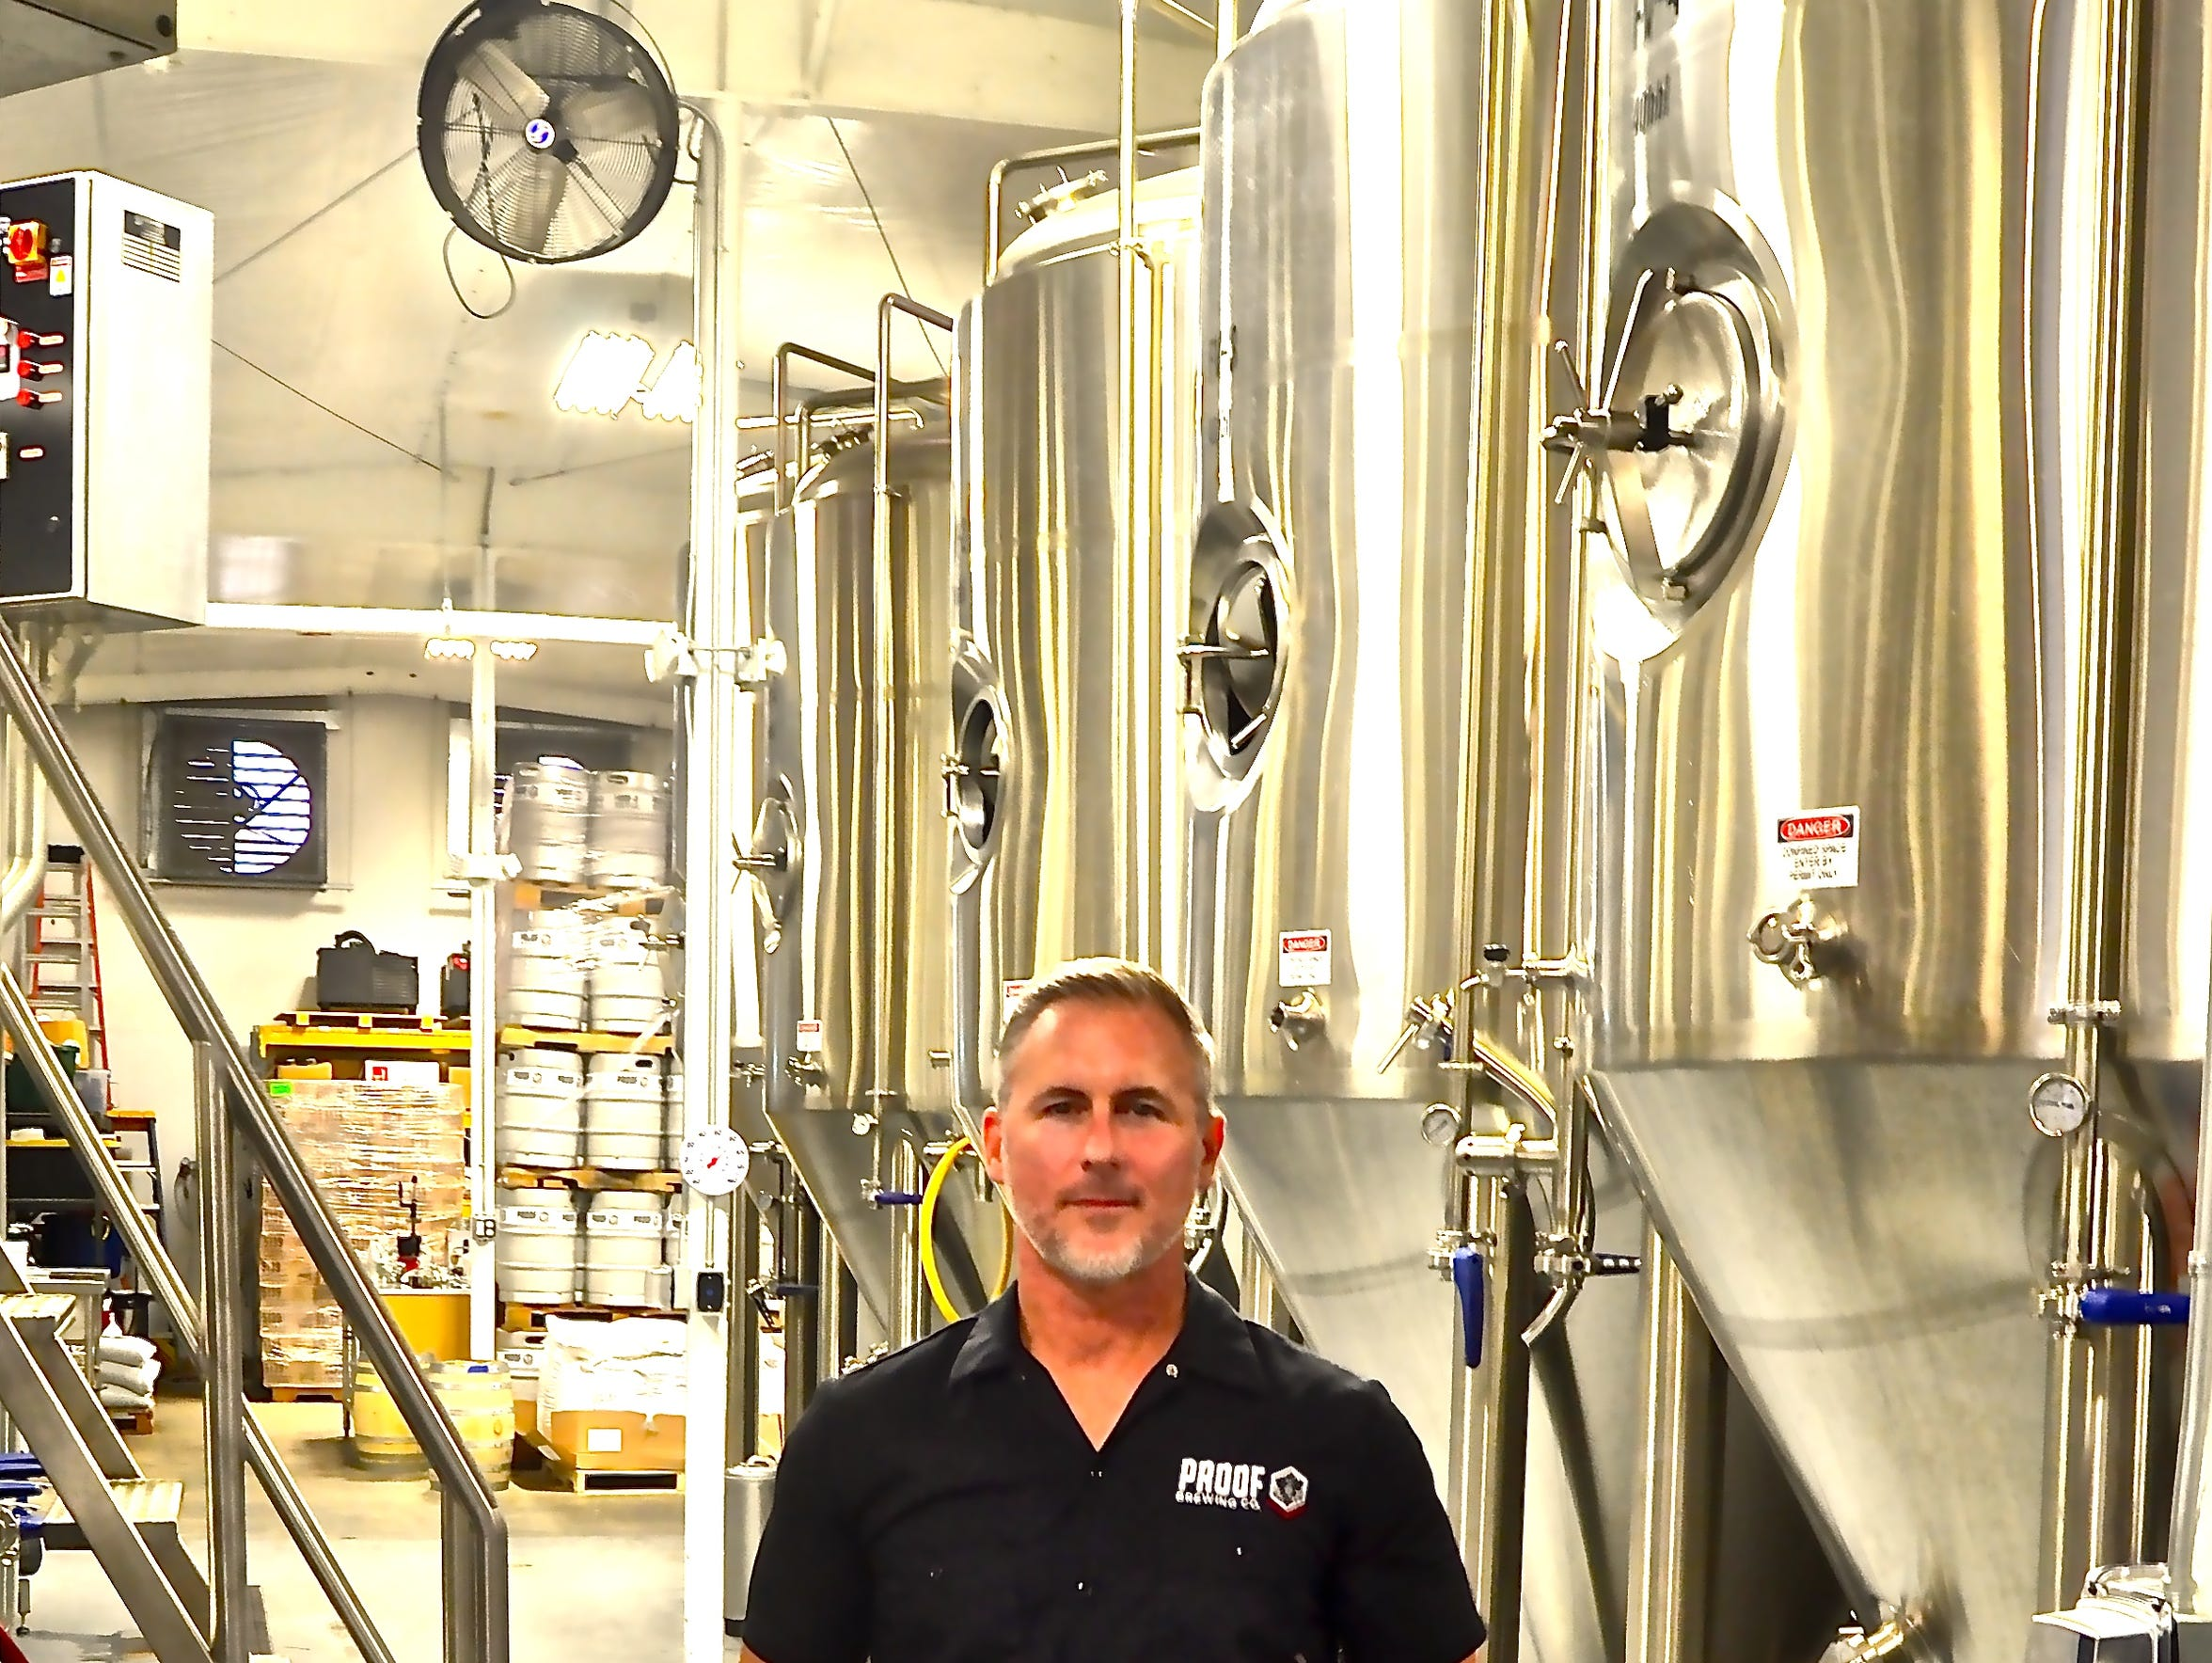 Bryan Burroughs stands amidst the brewing tanks at